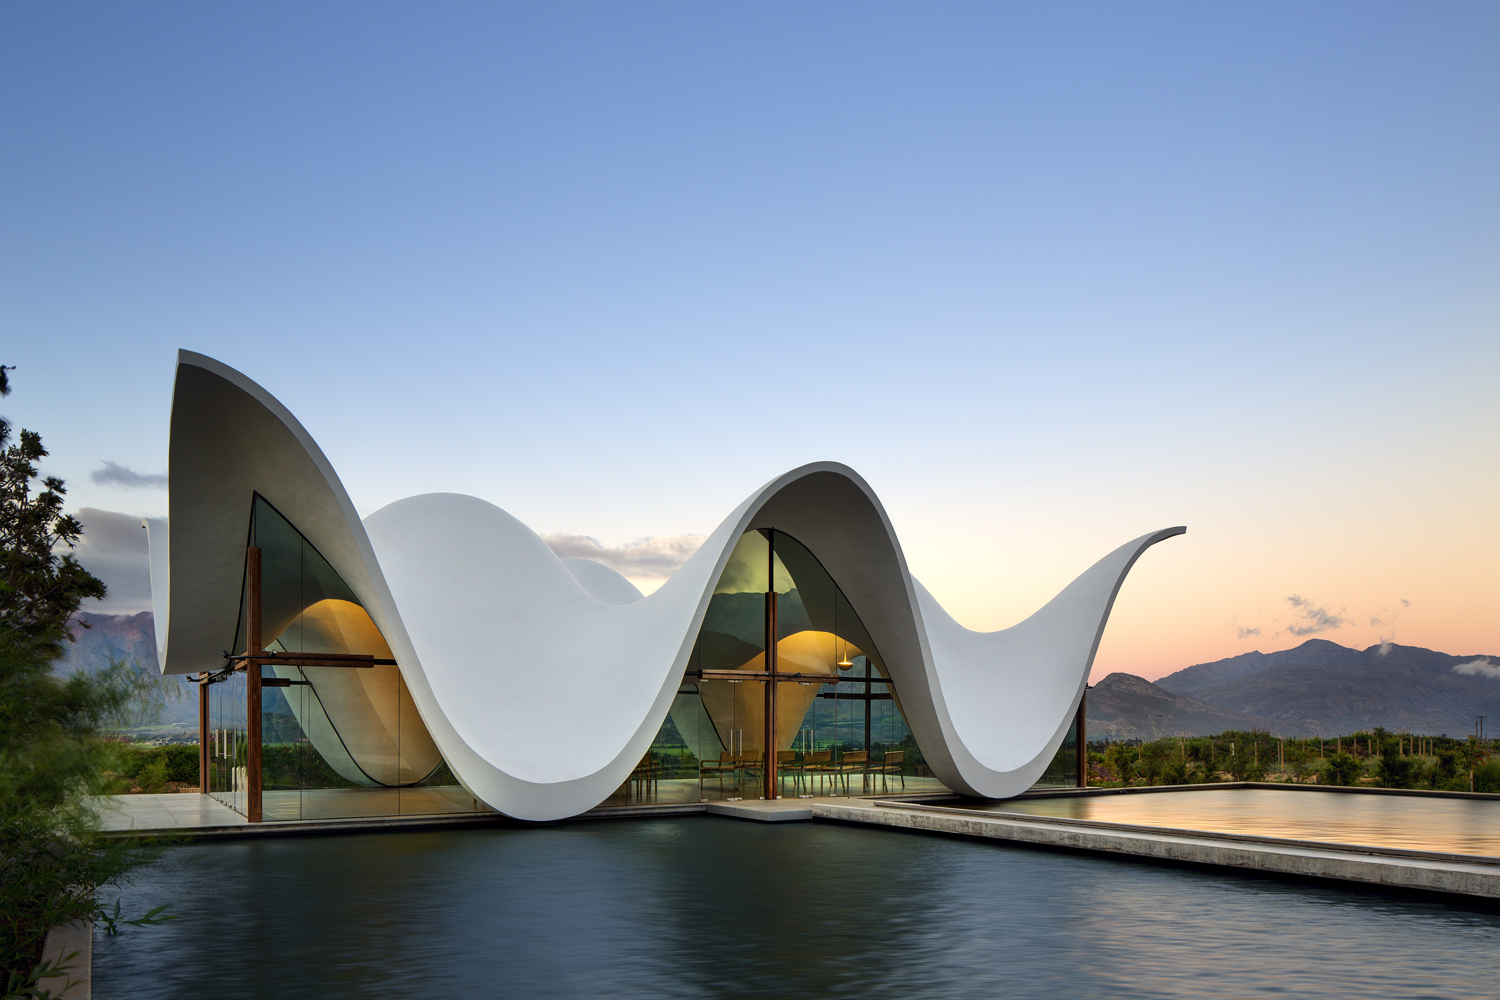 The concave rooflines of this church are made possible by their convex load-bearing counterparts